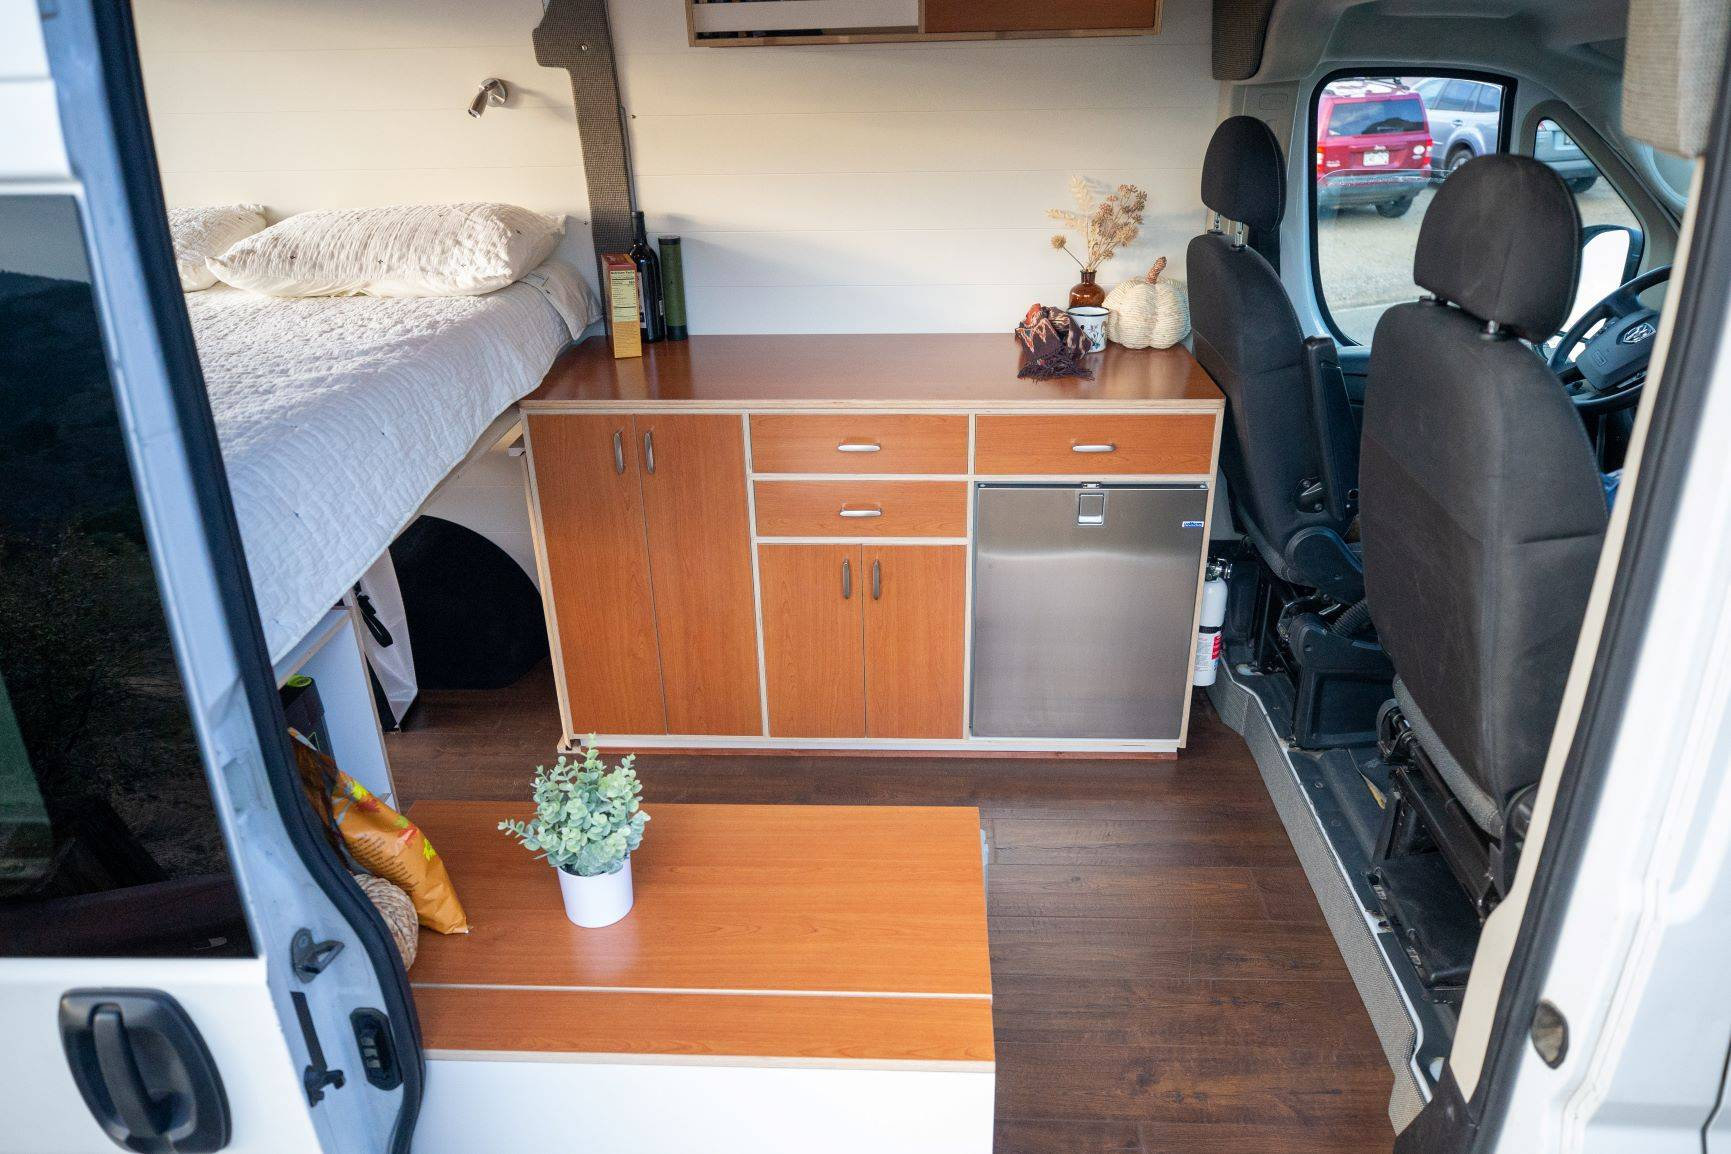 The Bivy - Sprinter 144 / ProMaster 136 Conversion Van Kitchen with Cabinets, Galley and Refrigerator - The Vansmith